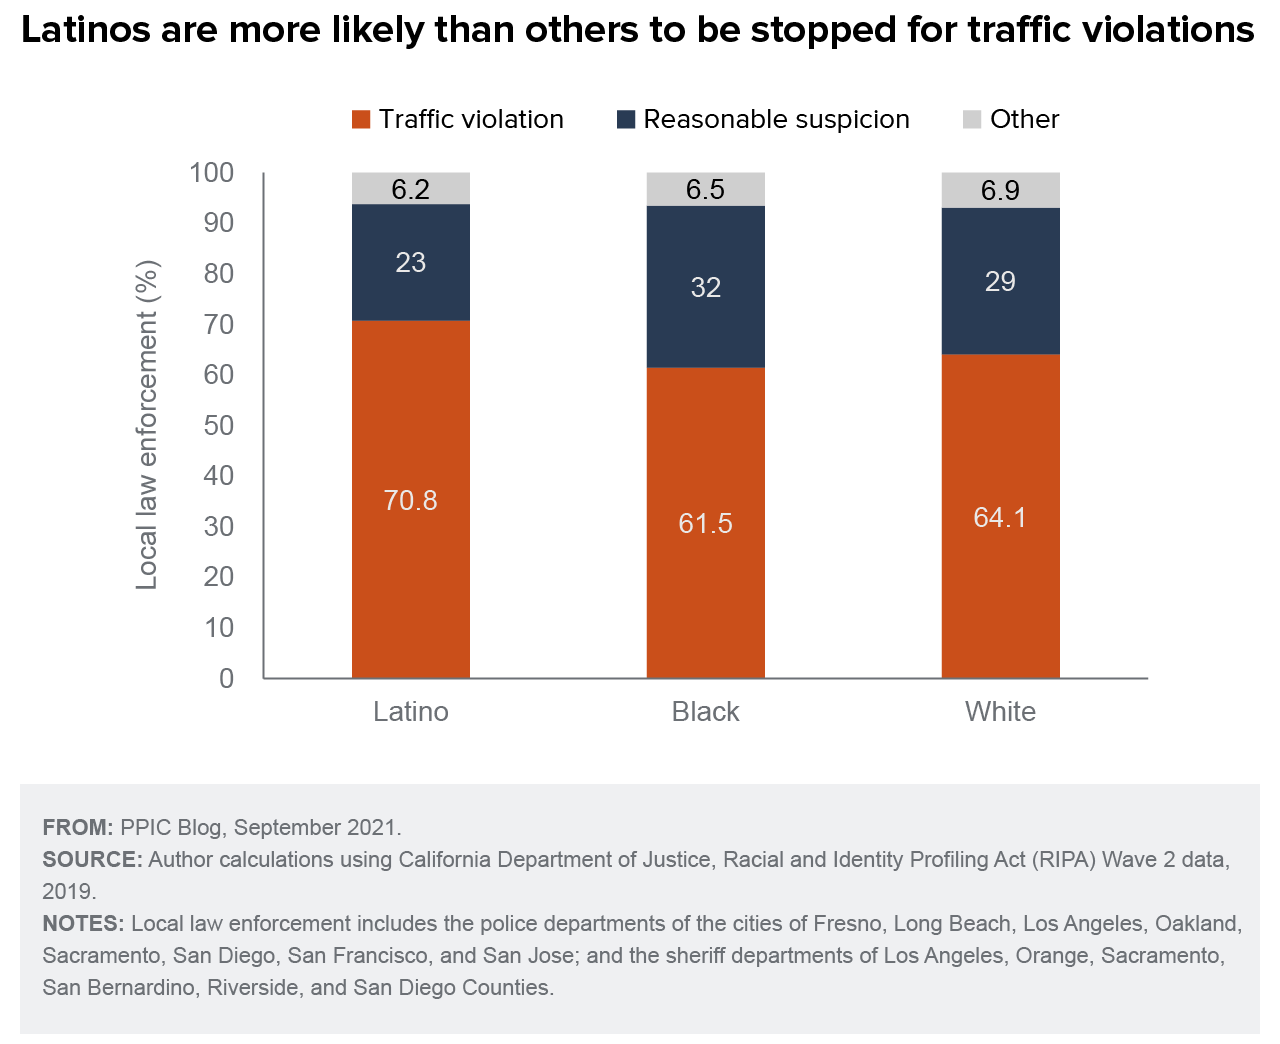 figure - Latinos Are More Likely than Others To Be Stopped for Traffic Violations